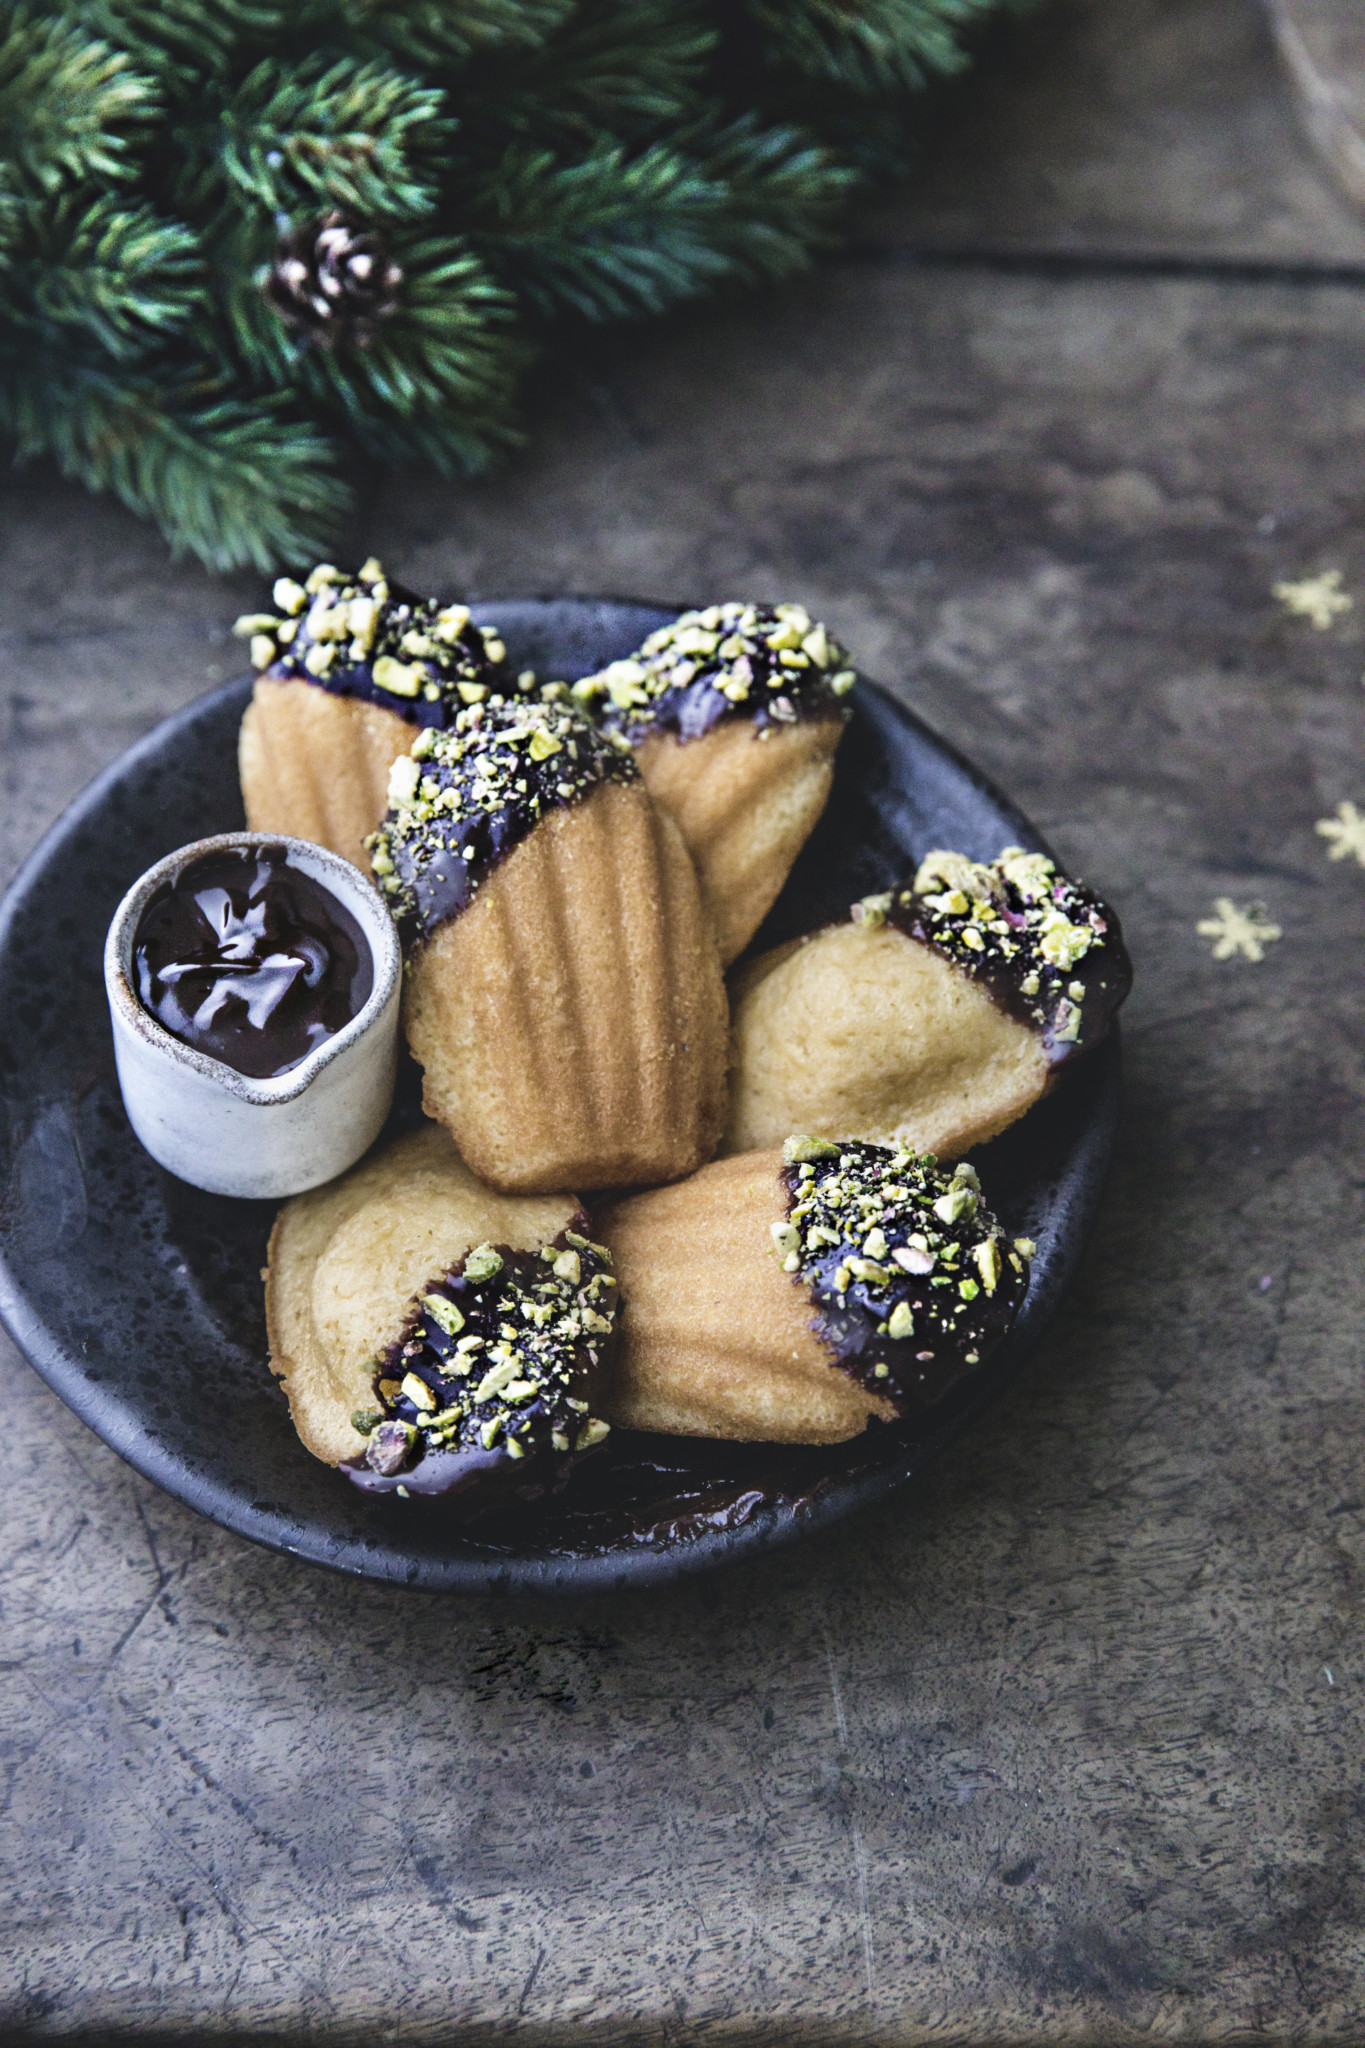 Chocolate dipped madeleine